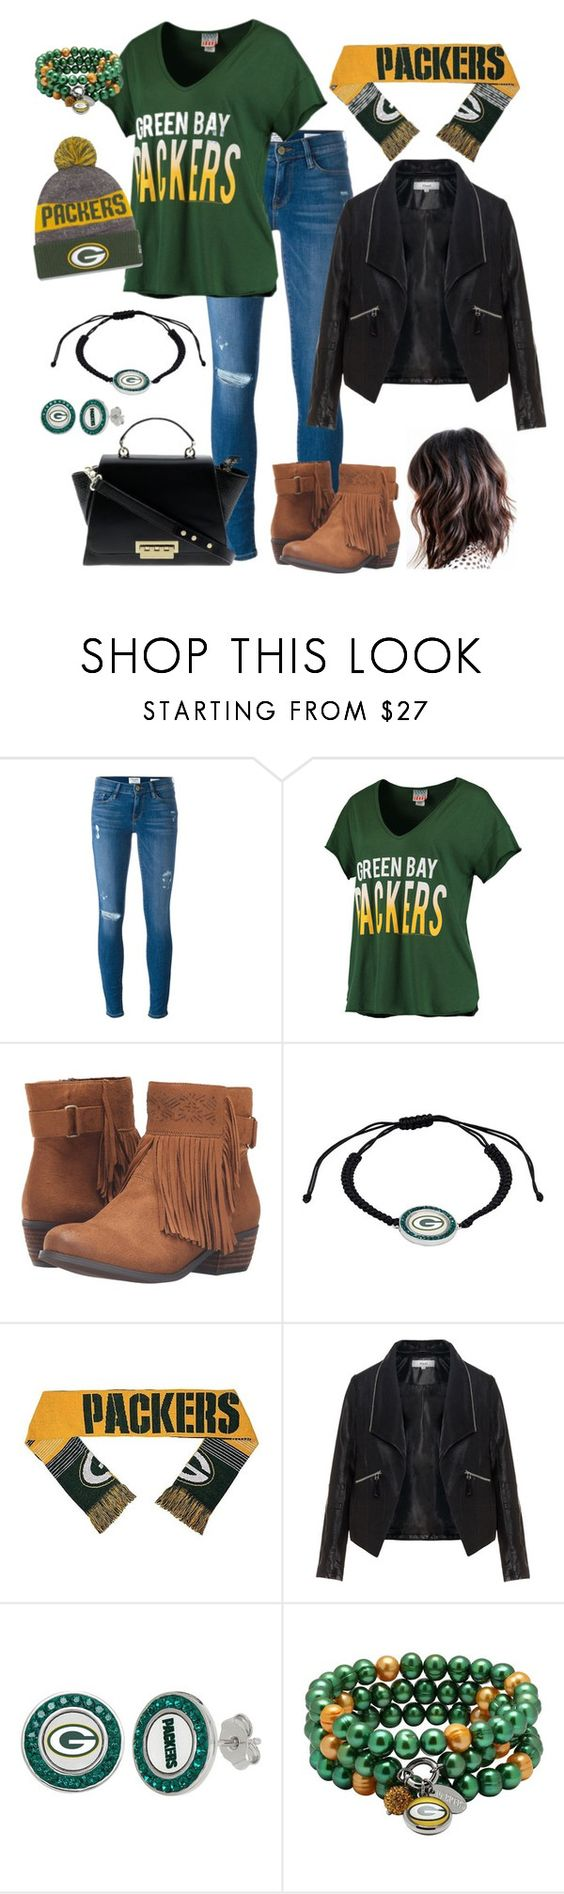 """Realm of the Packers"" by esmkay ❤ liked on Polyvore featuring Frame Denim, Junk Food Clothing, Not Rated, Zizzi, New Era and gameday"